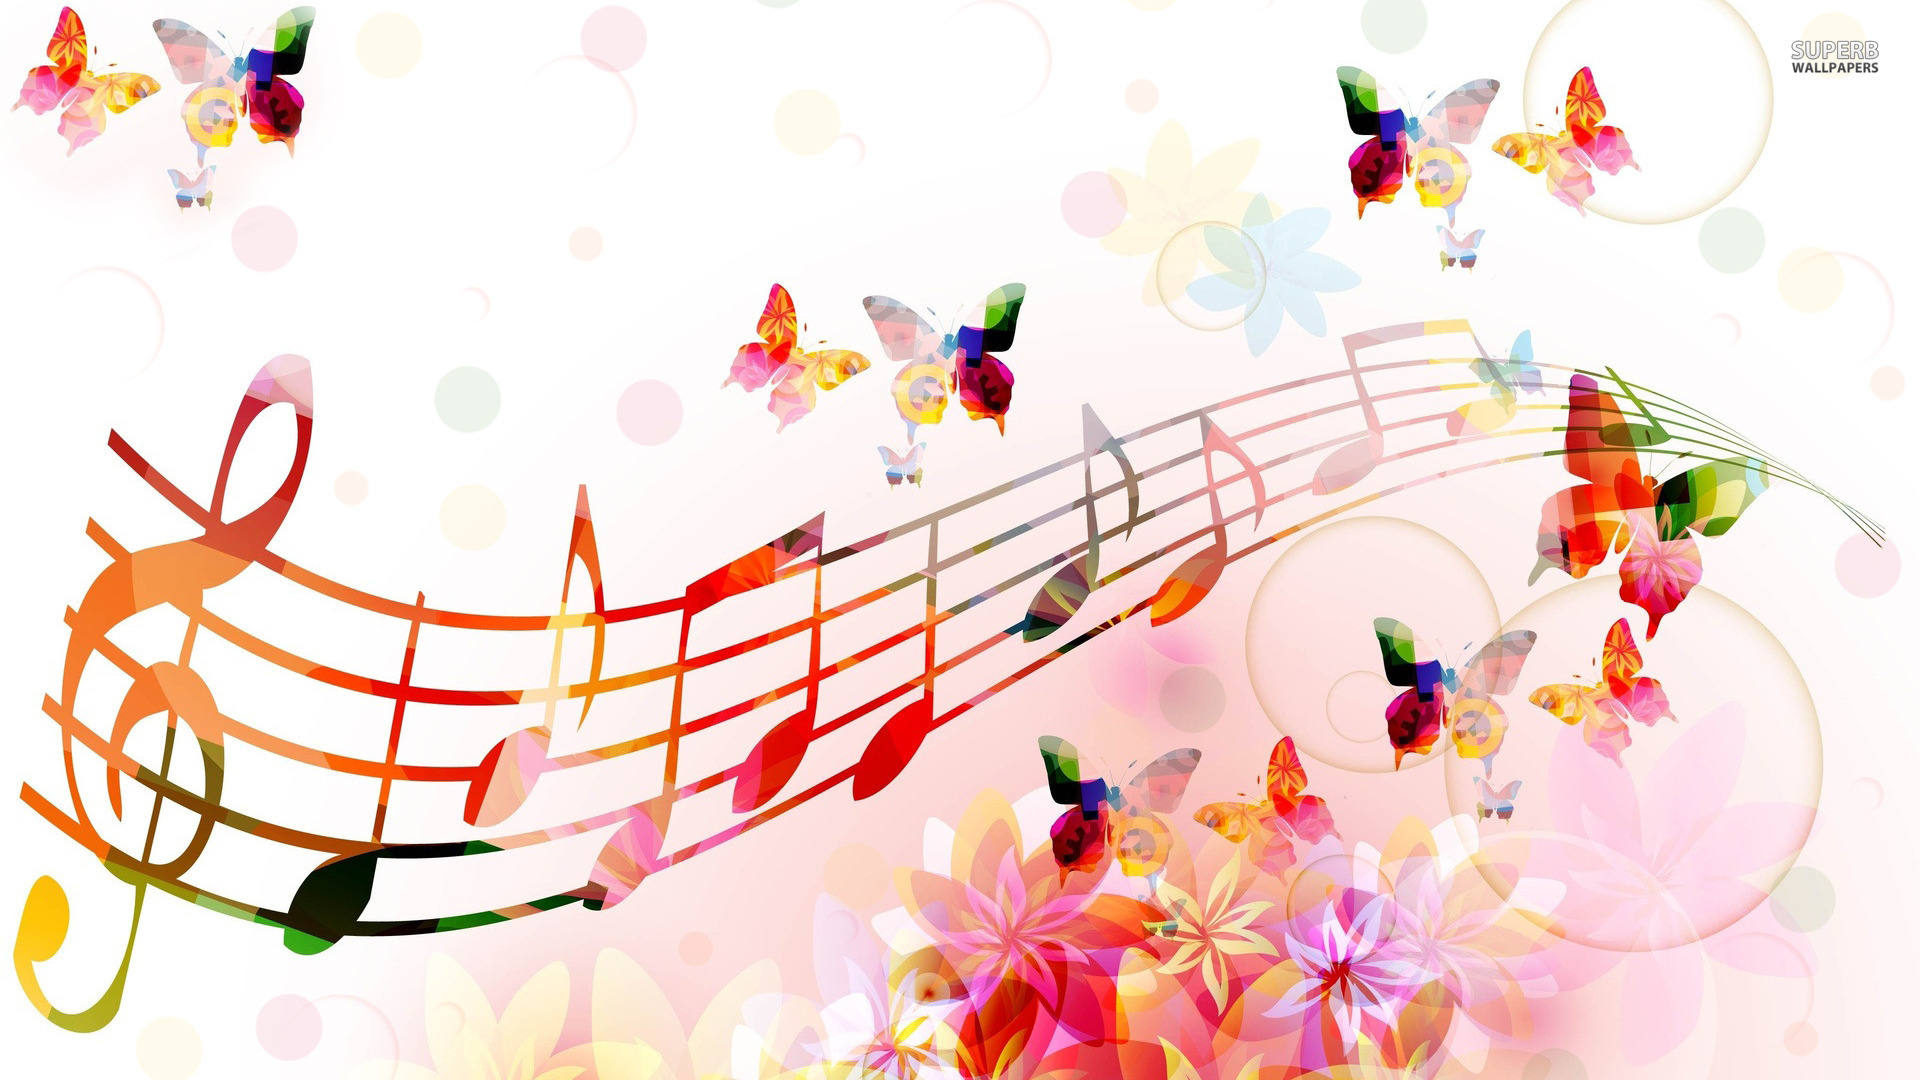 Wallpaper Music Notes Download HD Wallpapers 1920x1080